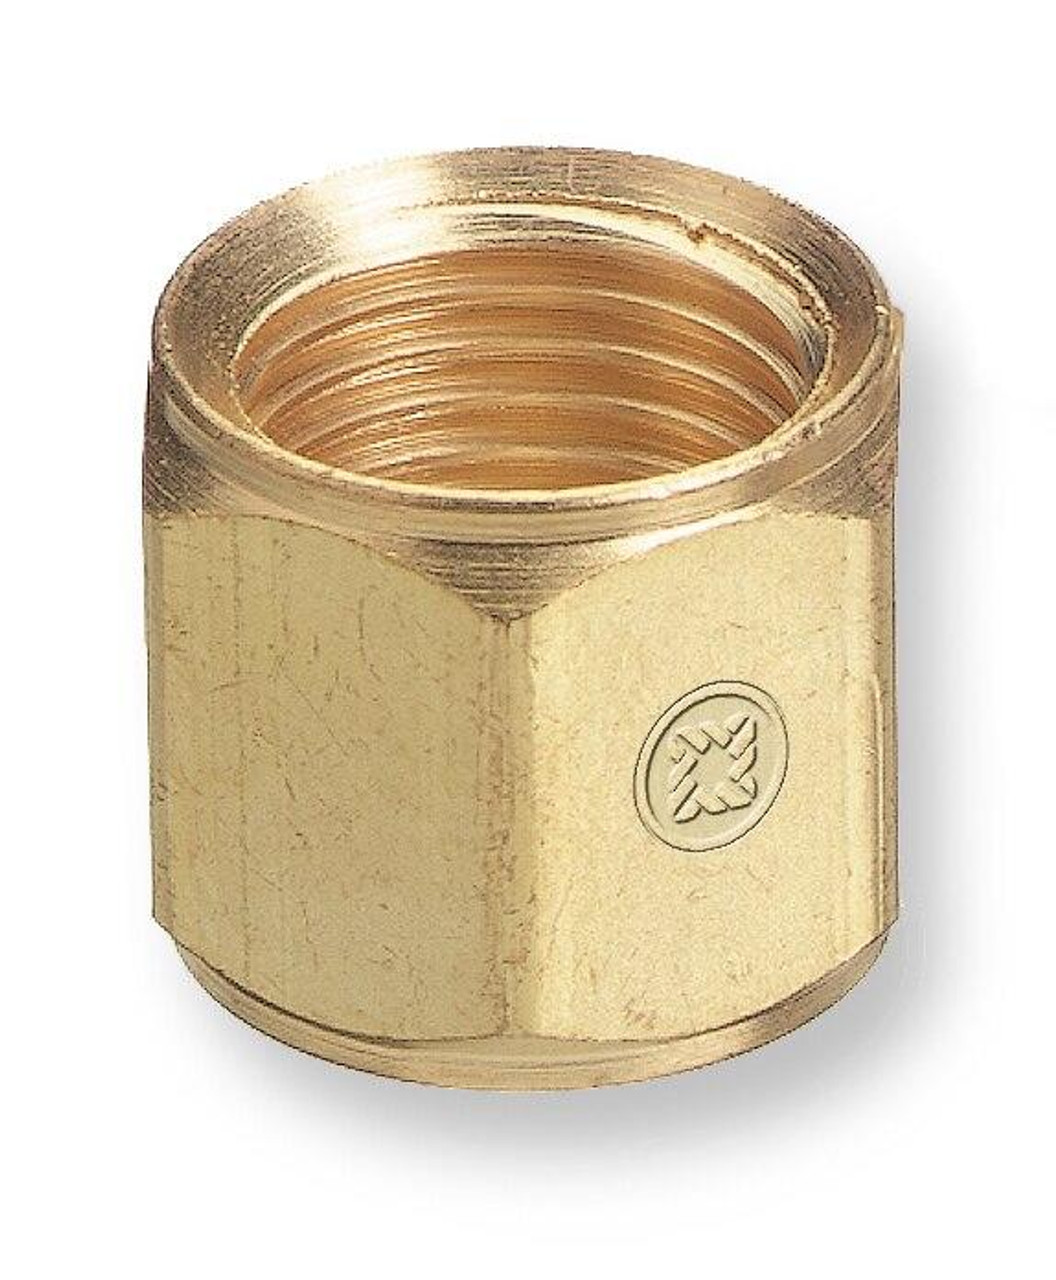 Western Enterprises 7 B Size 200 PSI Brass Nuts - Pack of 5